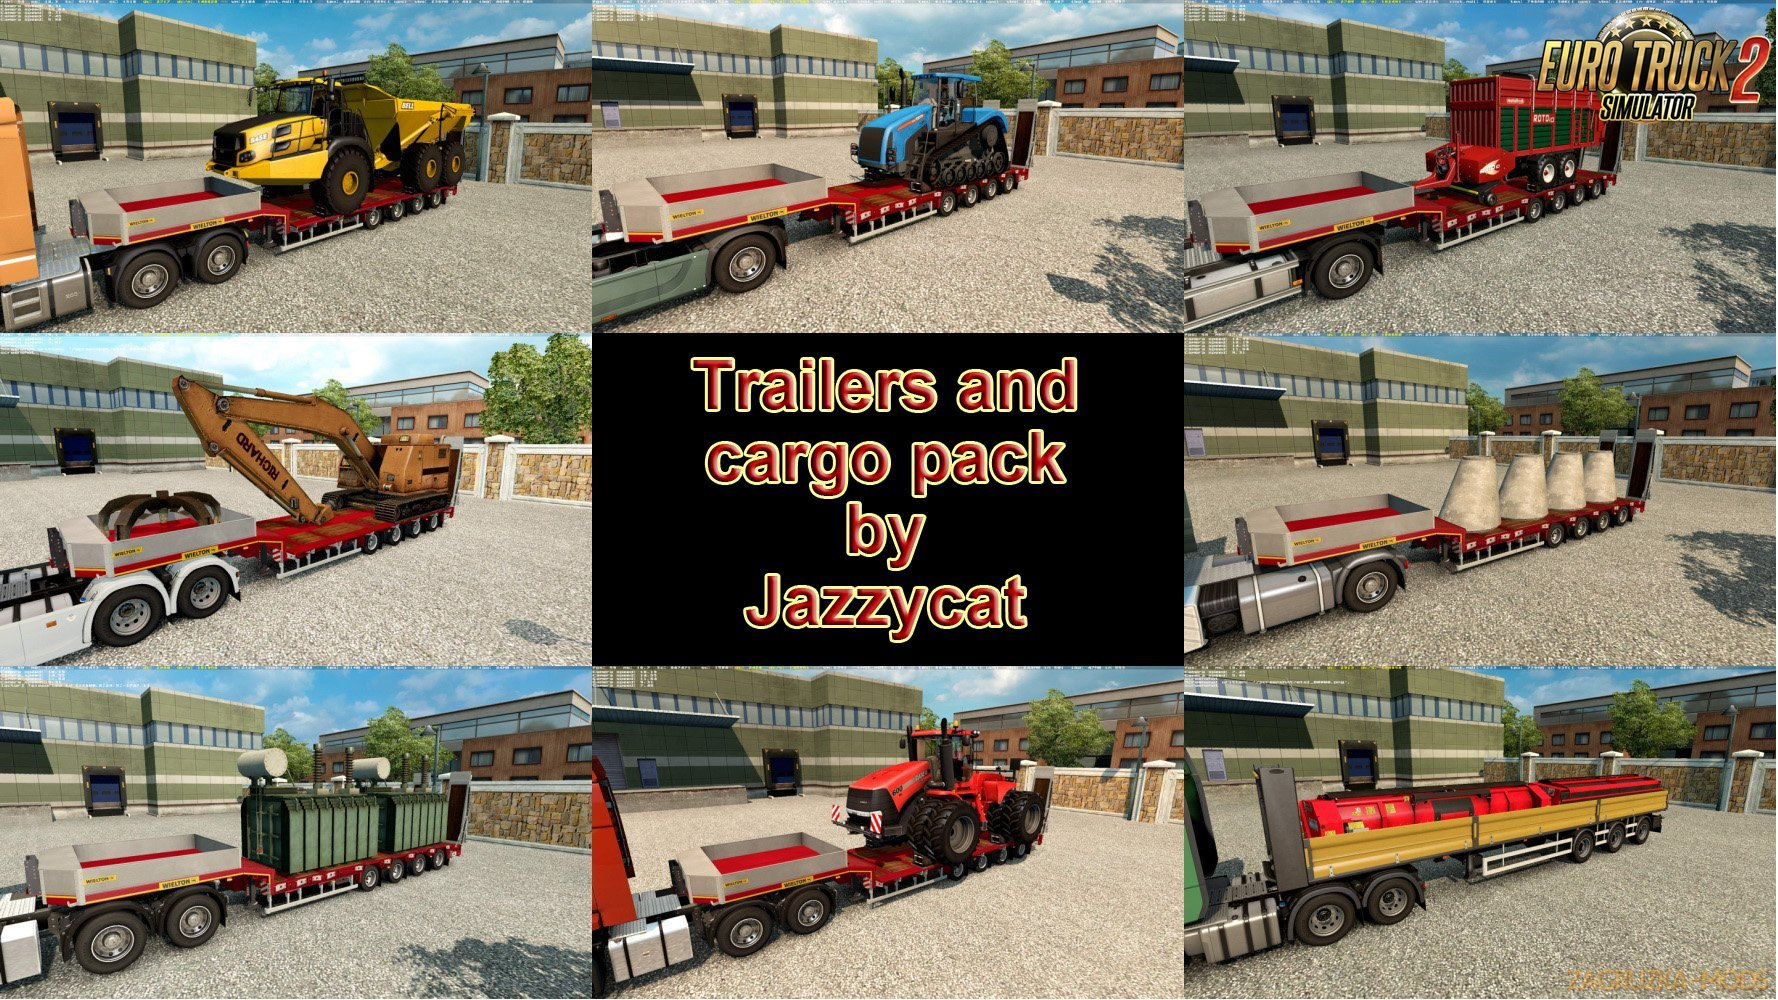 Fix 2 for Trailers and Cargo Pack v6.8 by Jazzycat